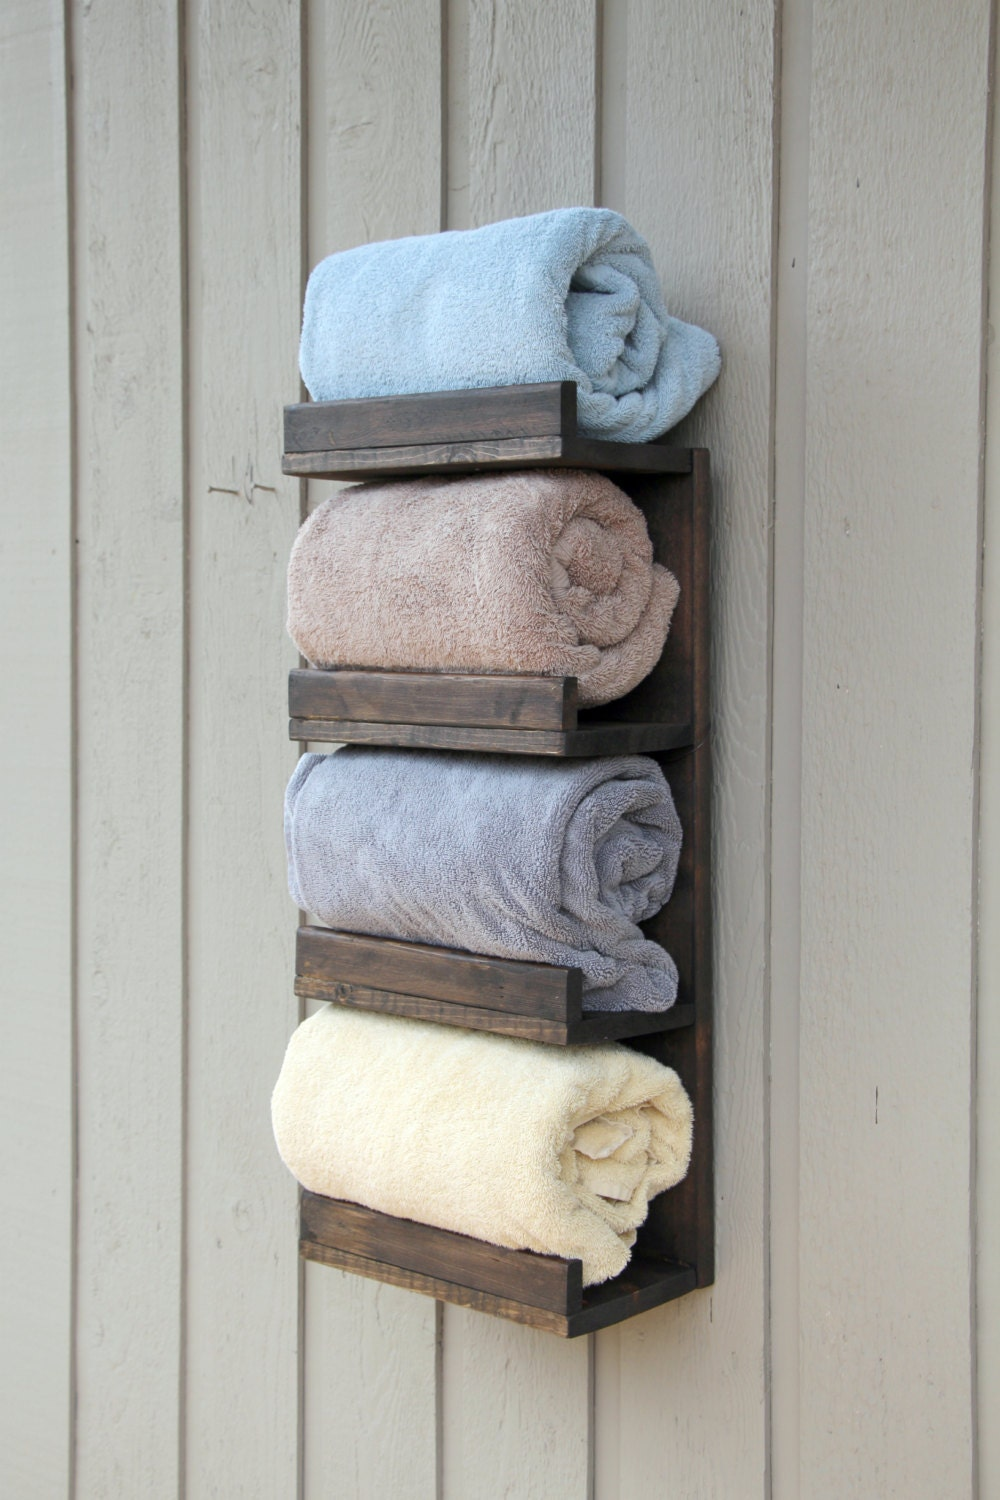 bathroom towel rack 4 tier bath storage everyday towel rack. Black Bedroom Furniture Sets. Home Design Ideas